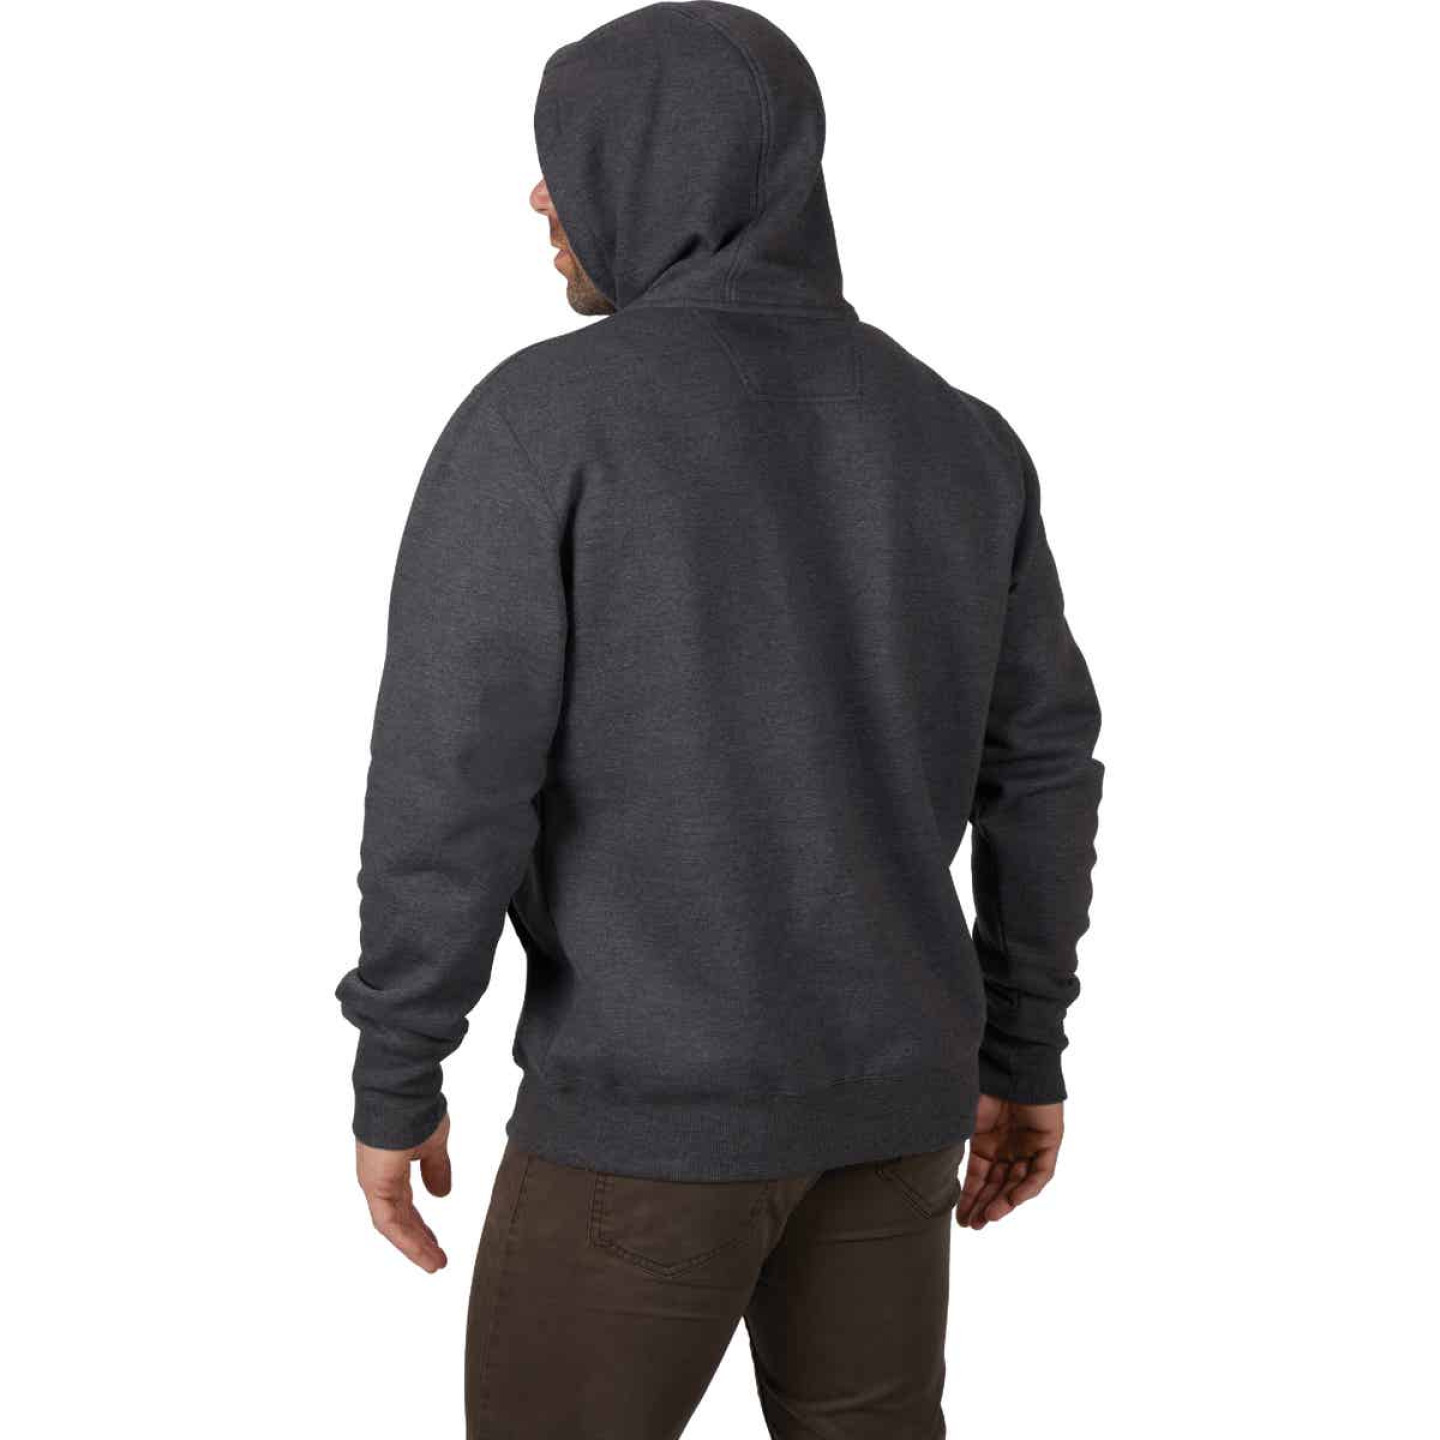 Milwaukee 2XL Gray Heavy-Duty Pullover Hooded Sweatshirt Image 3